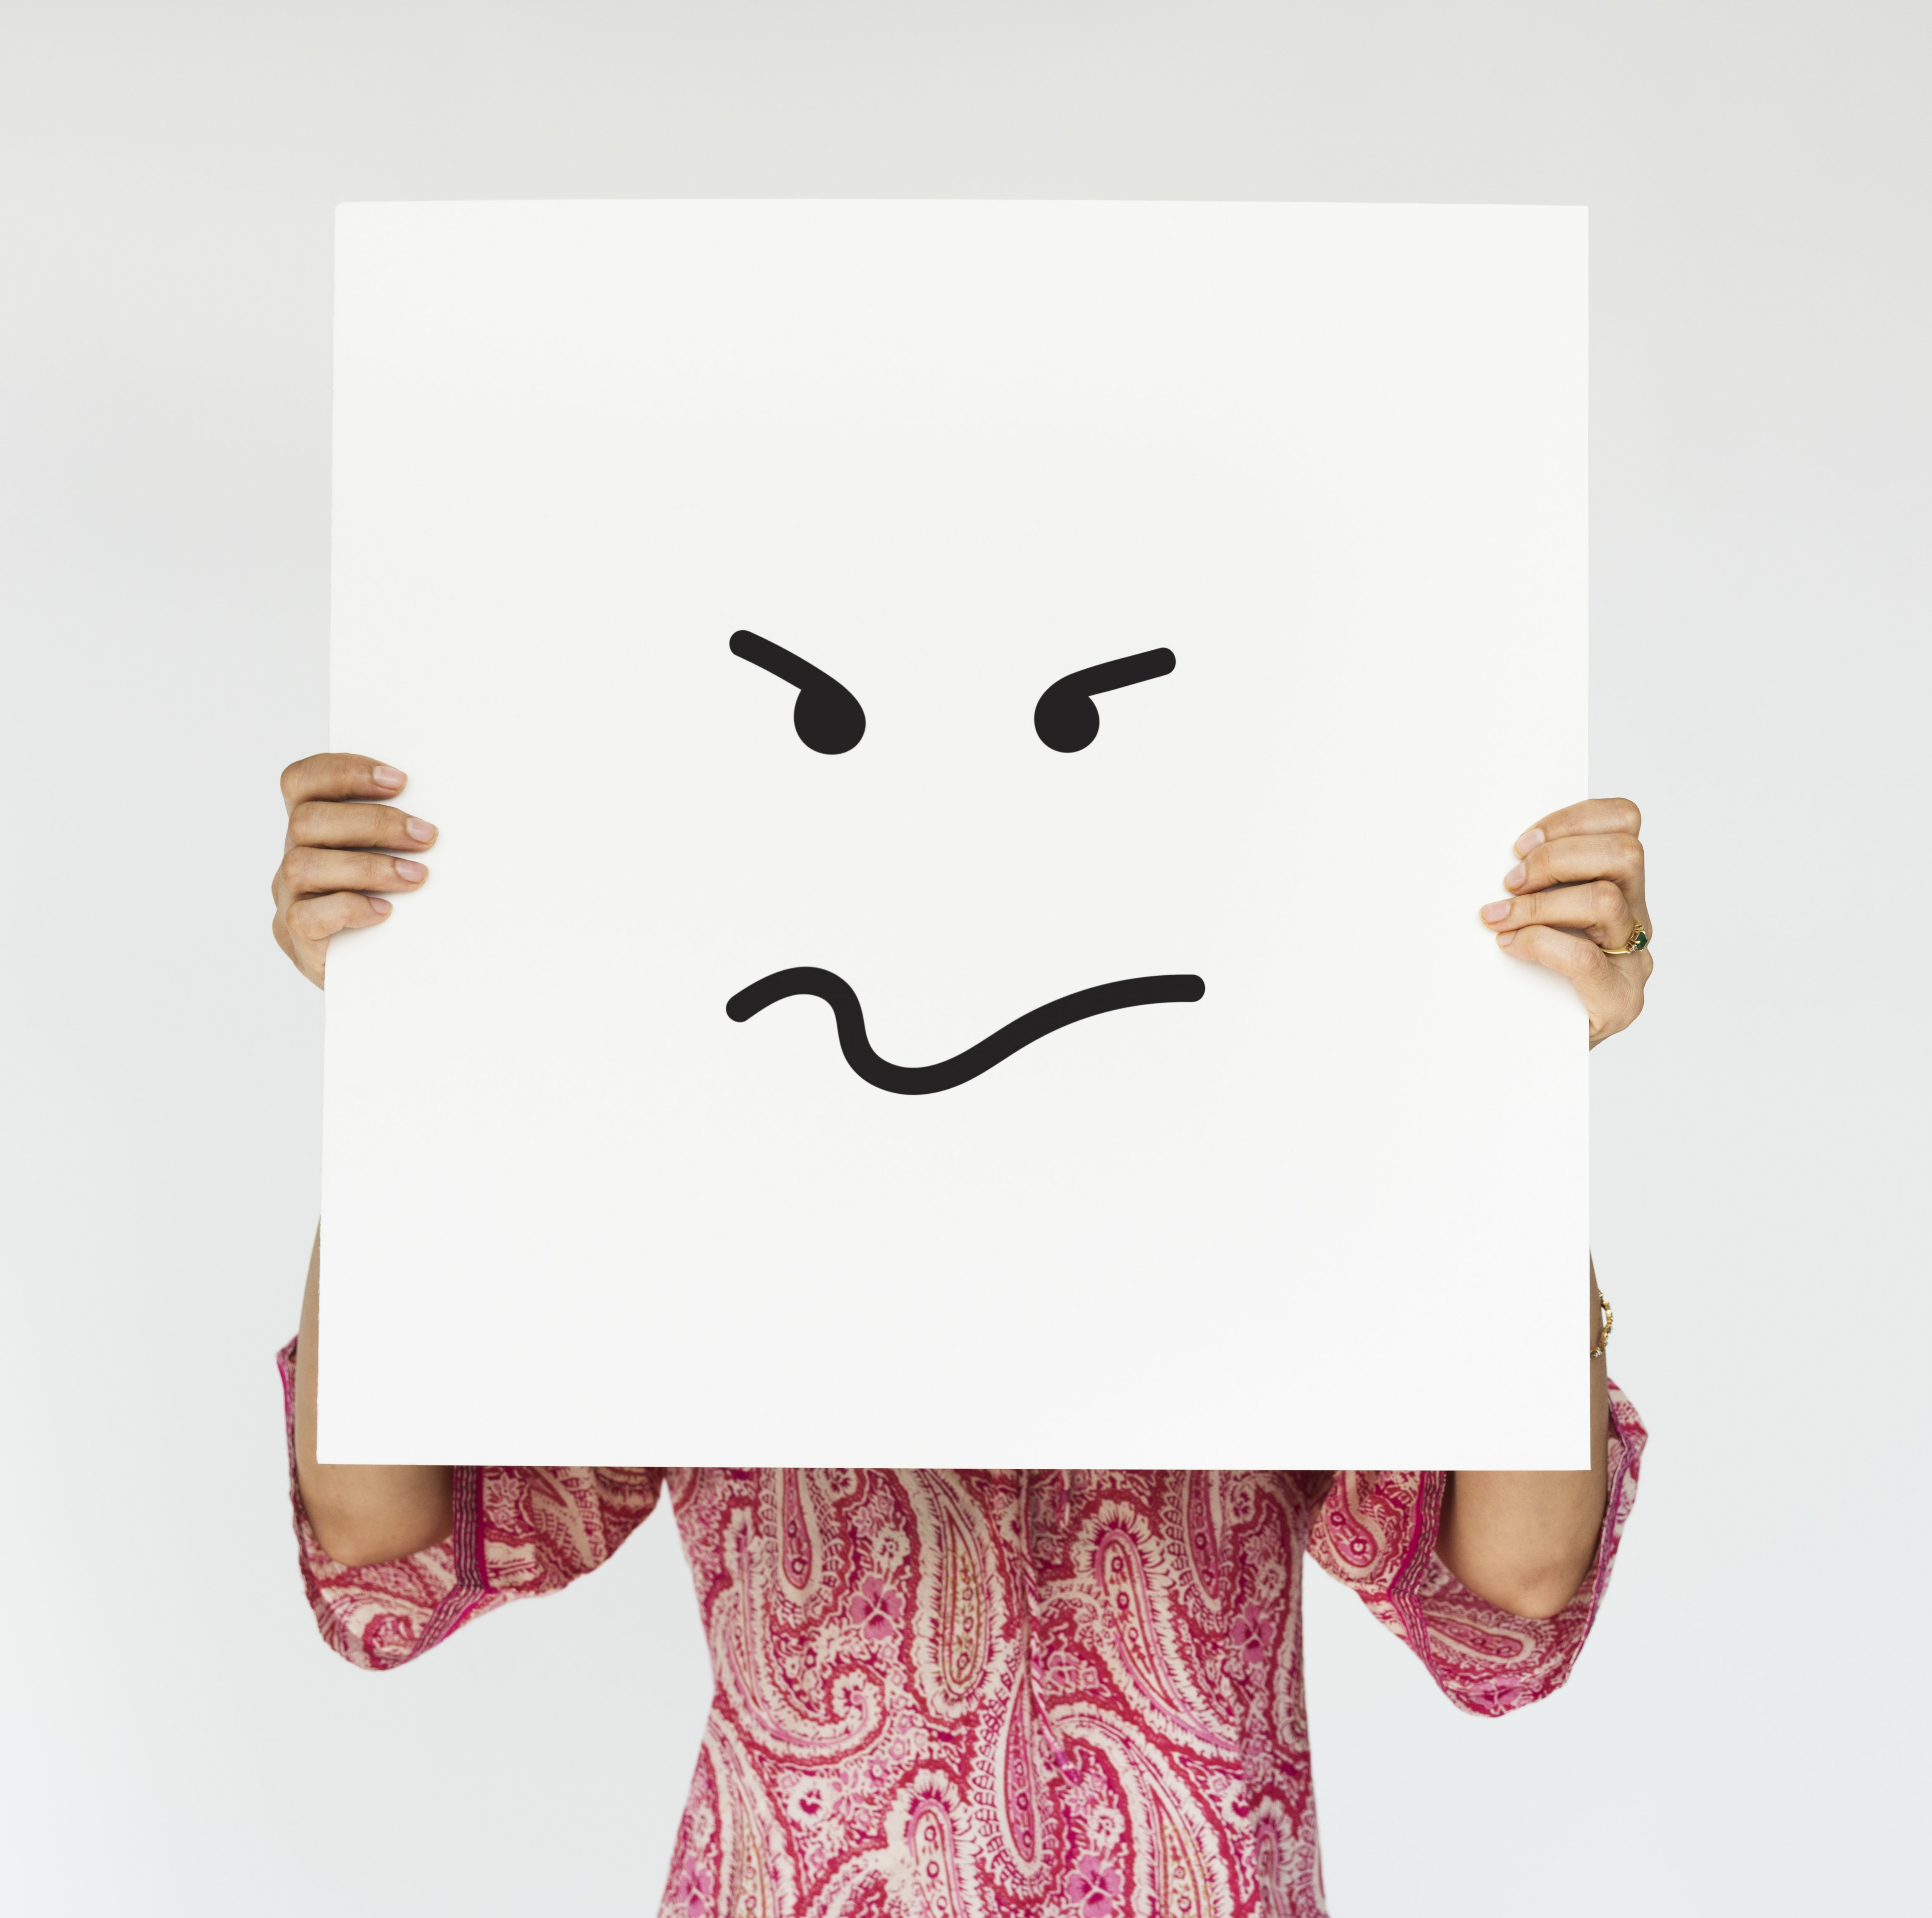 A woman holding an angry face painted on a signboard.   Source: Freepik.